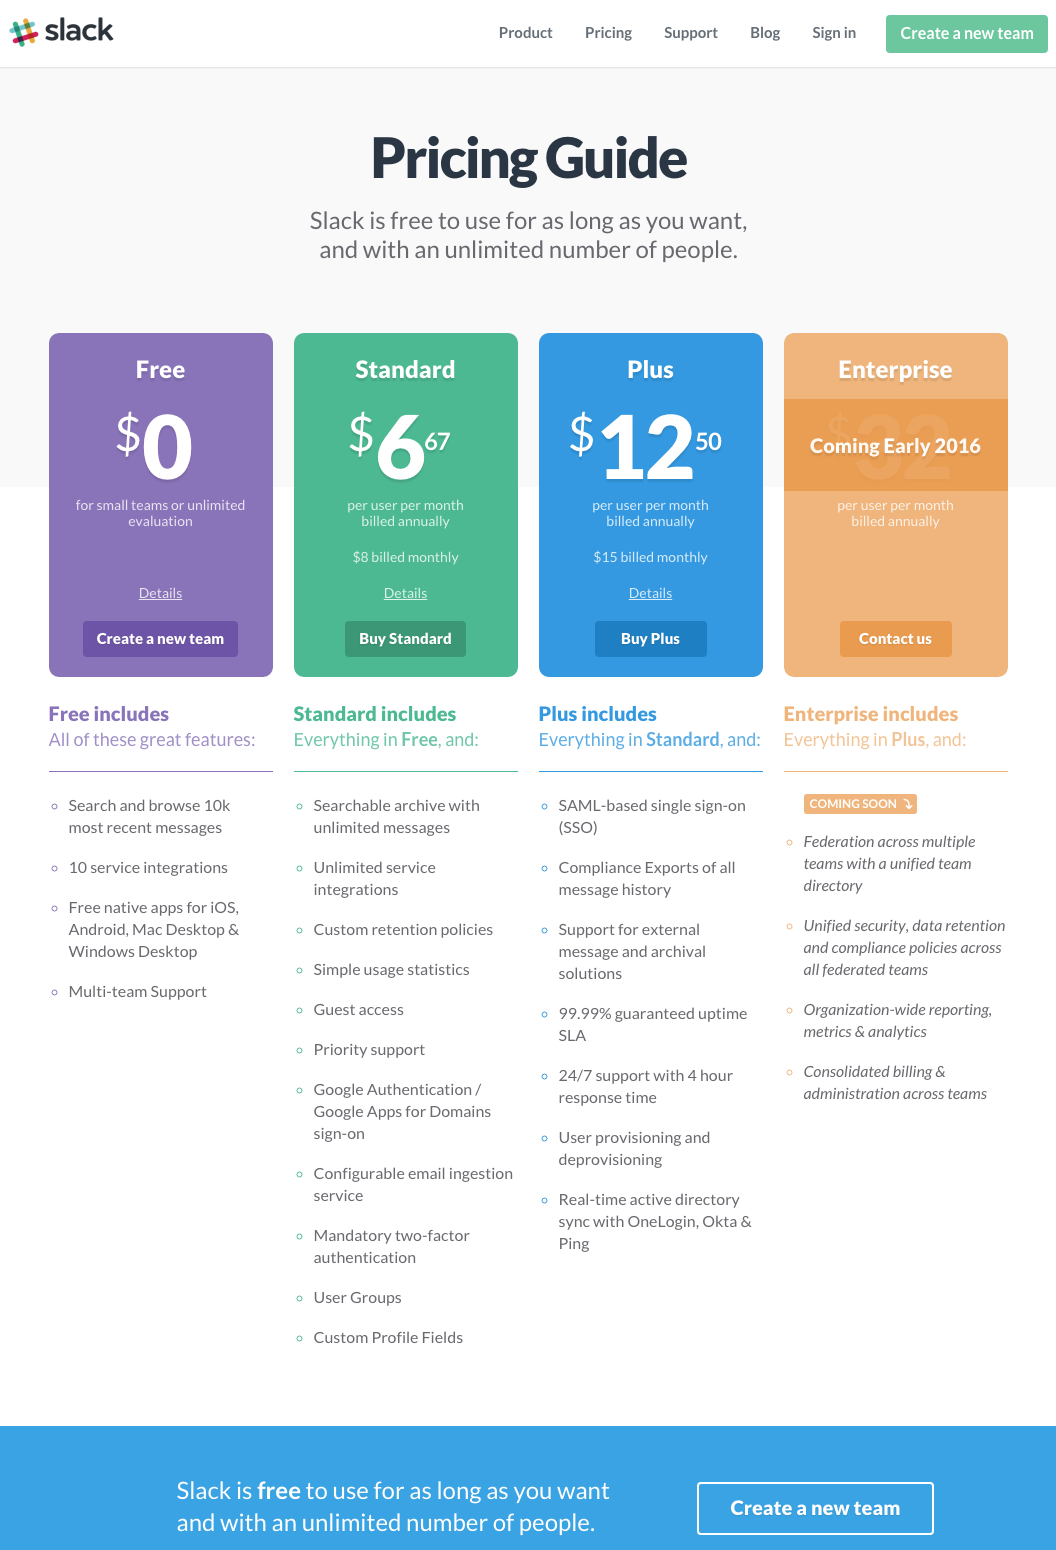 slack-pricing-page.png